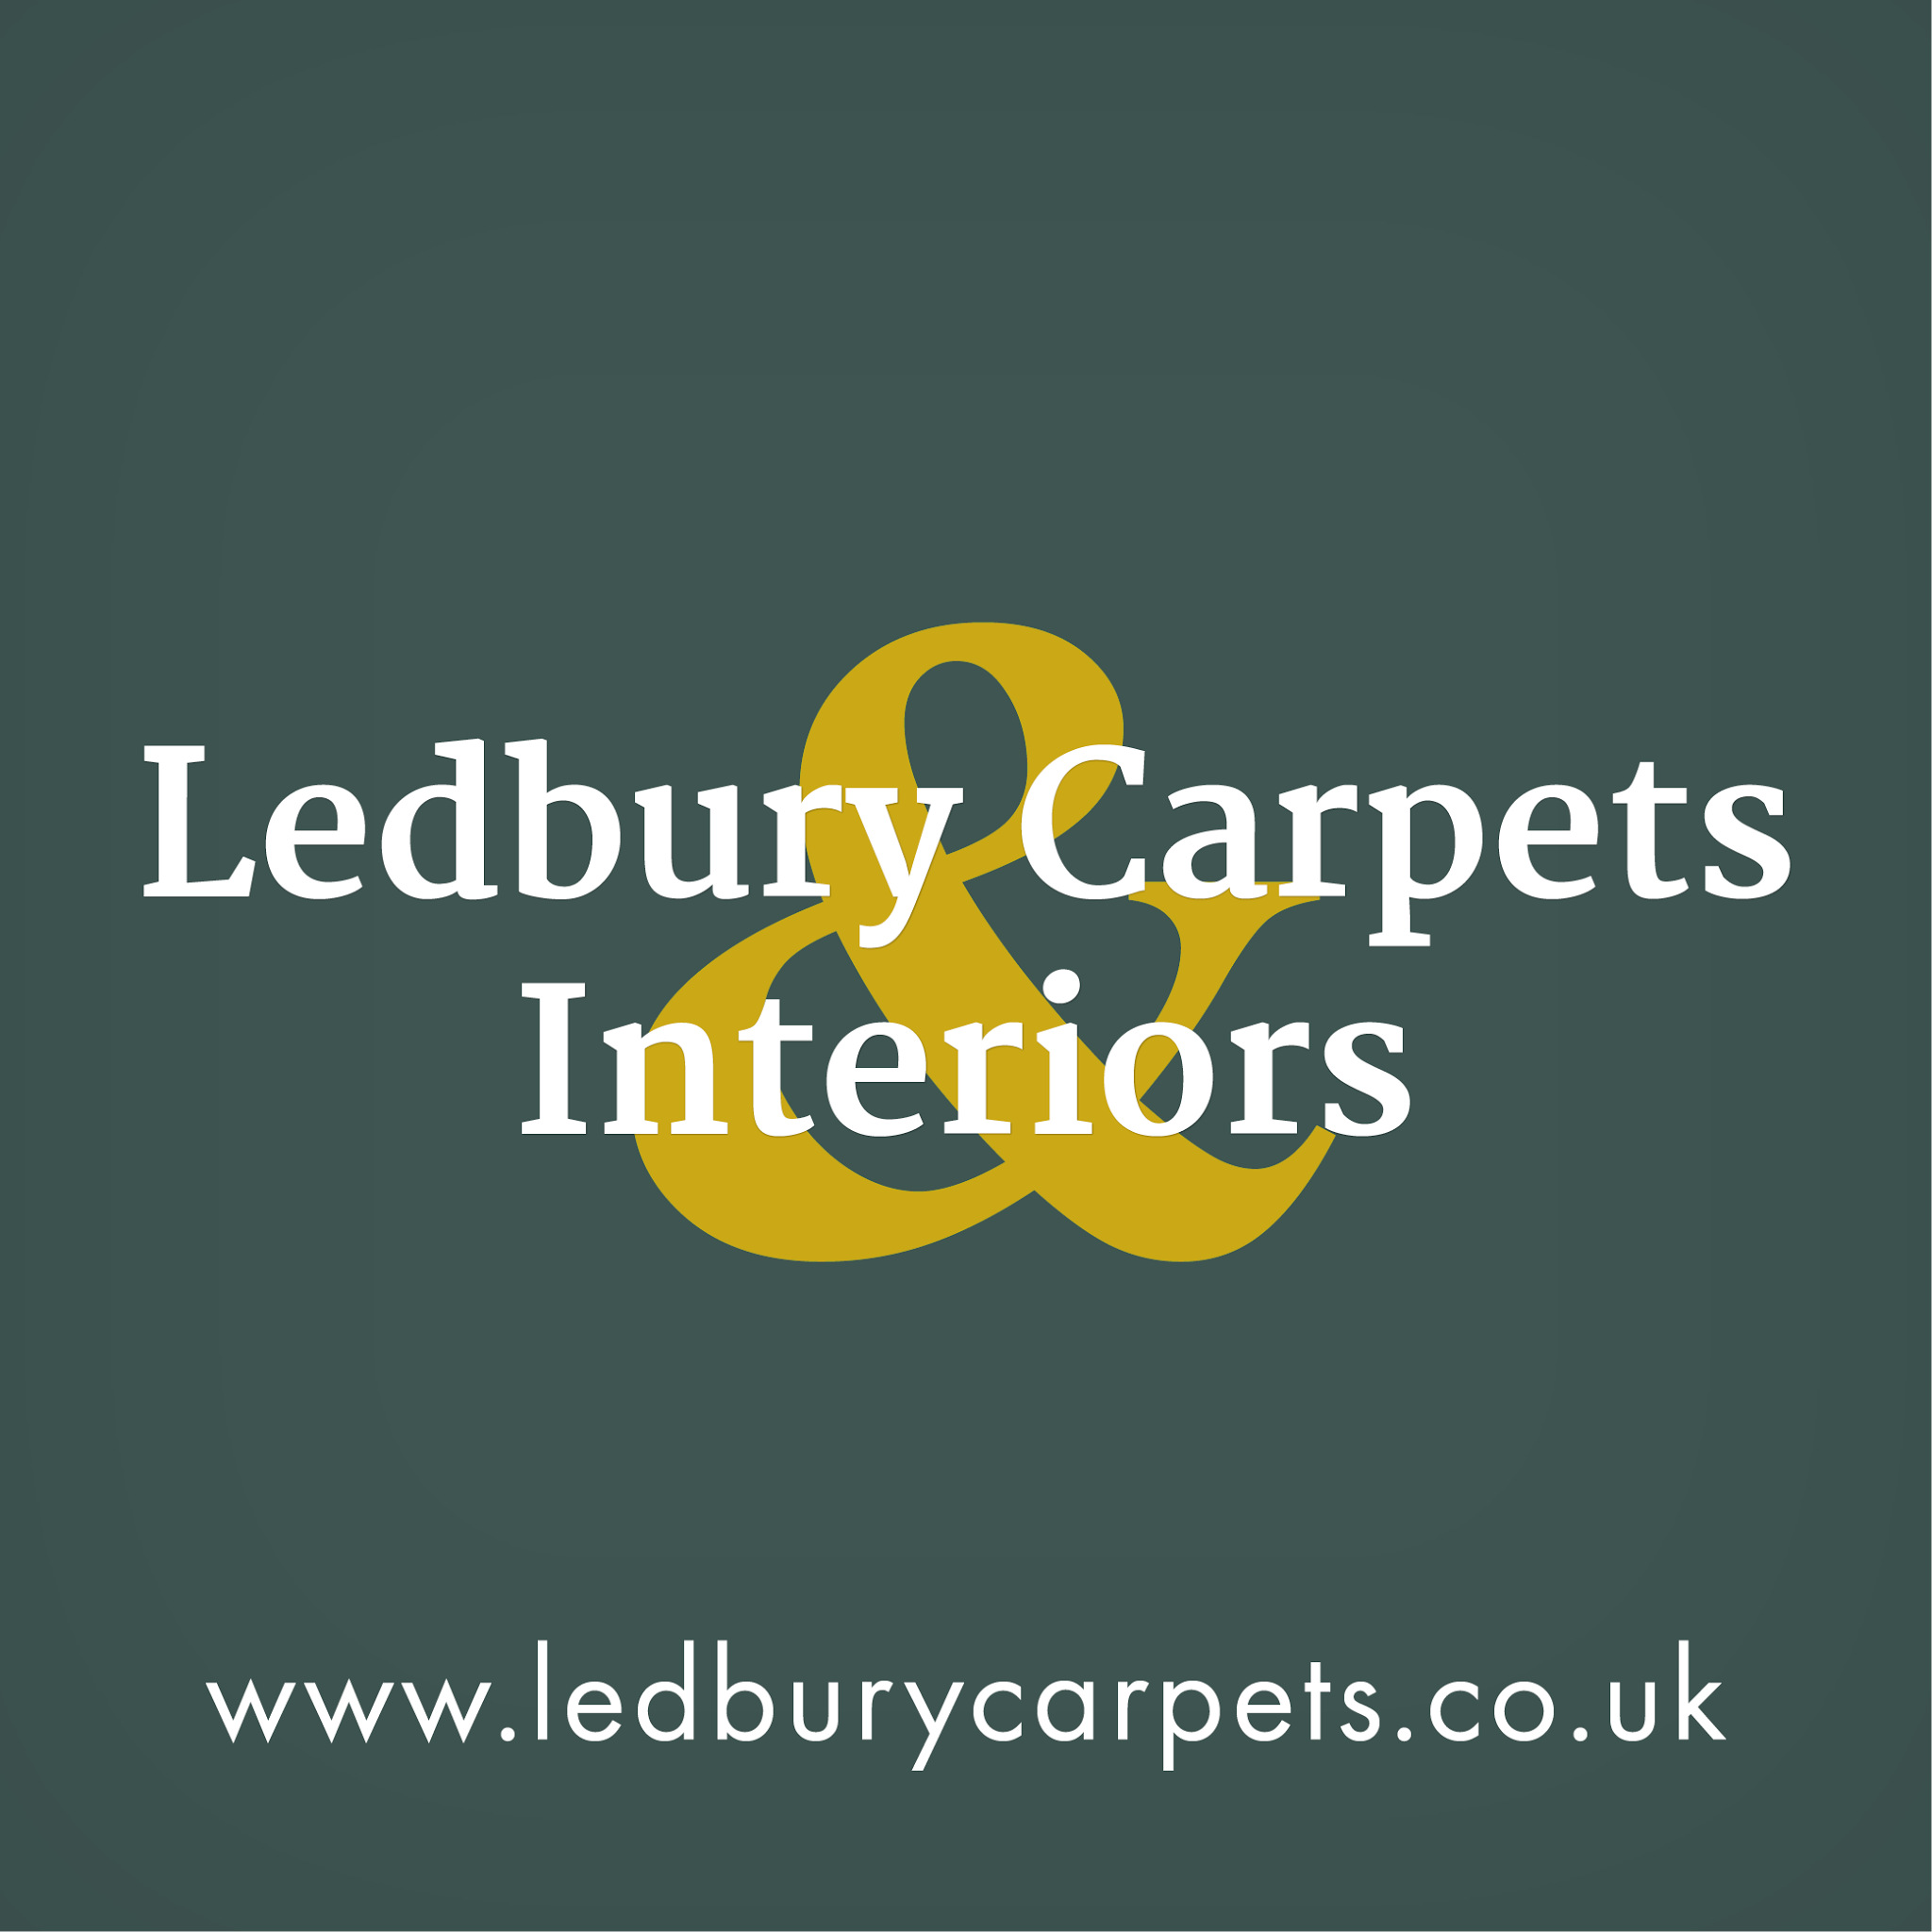 Ledbury Carpets and Interiors logo